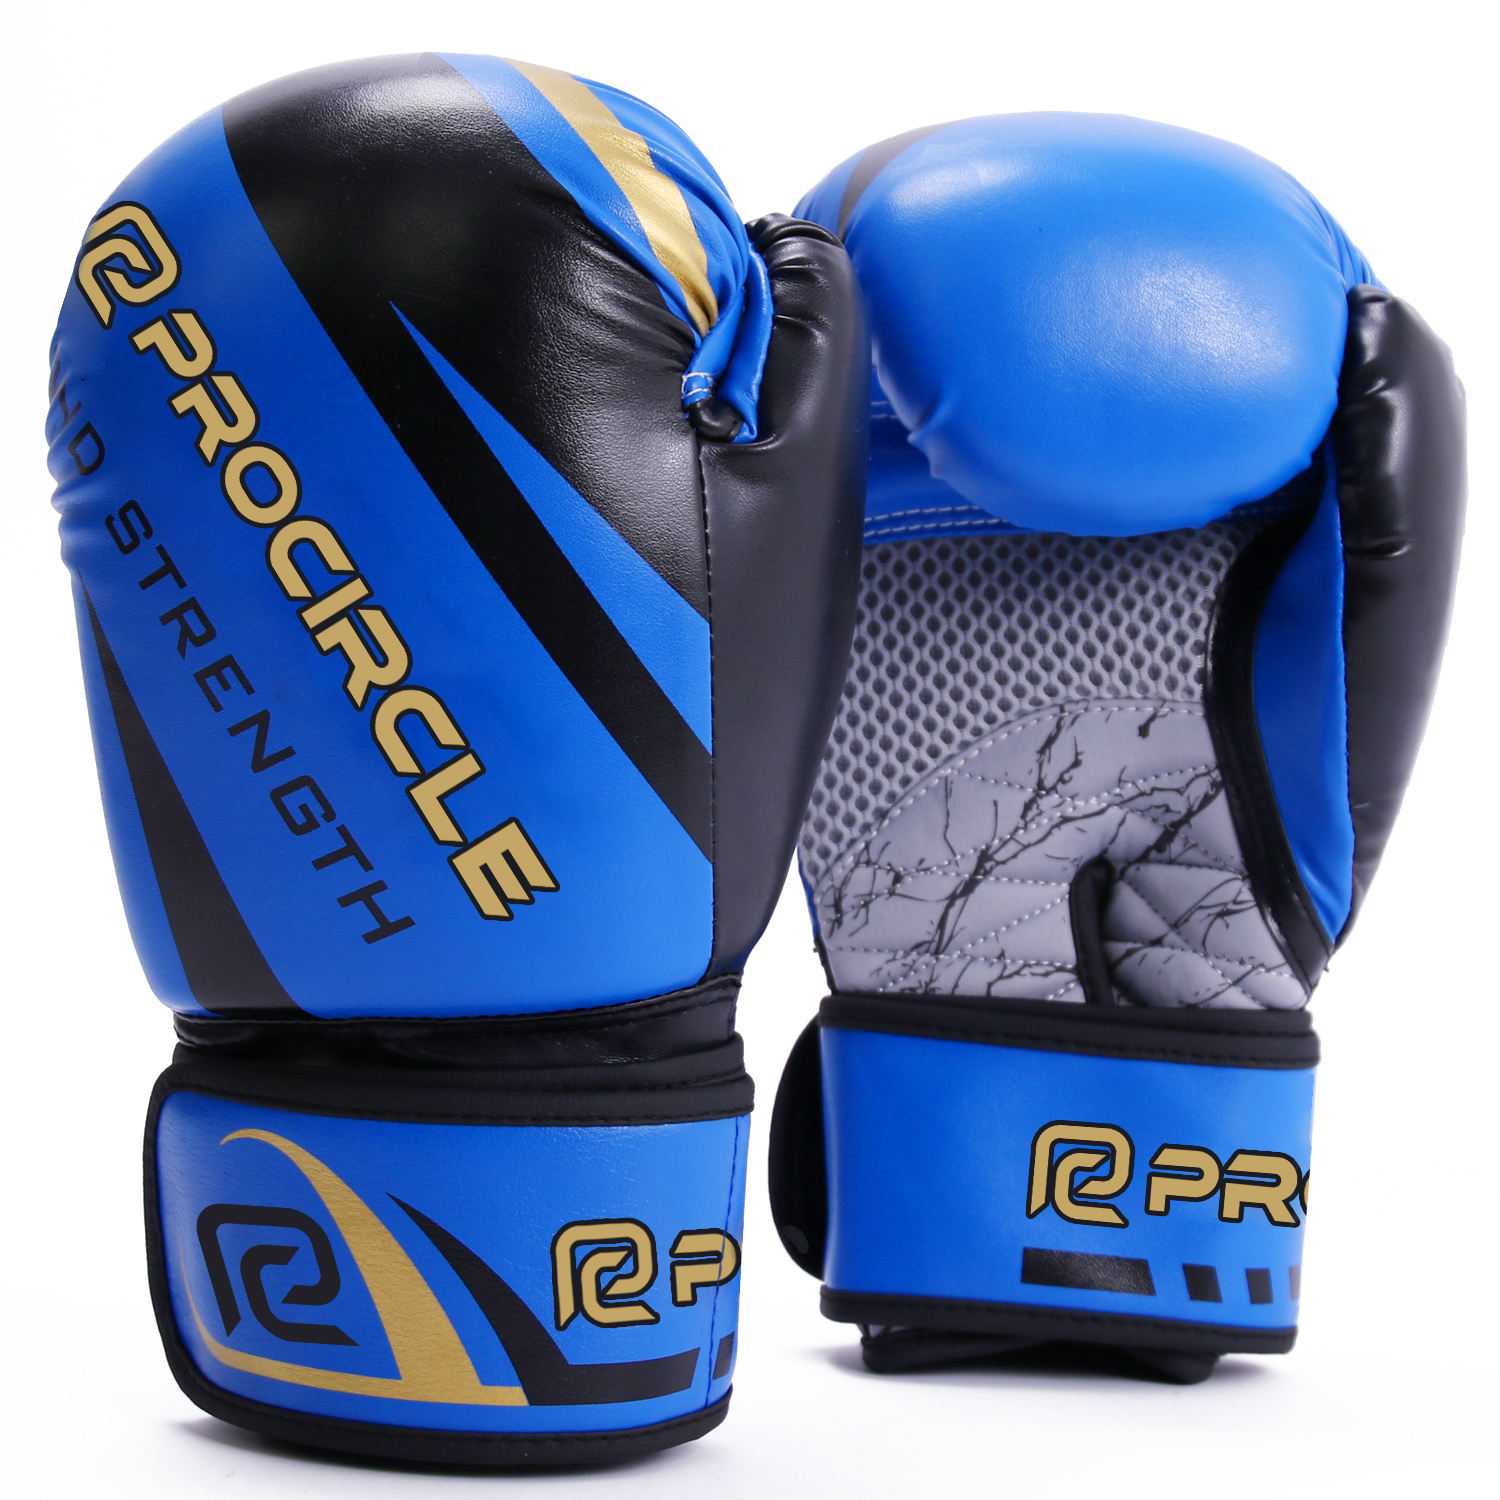 Custom MMA Training Boxing Gloves